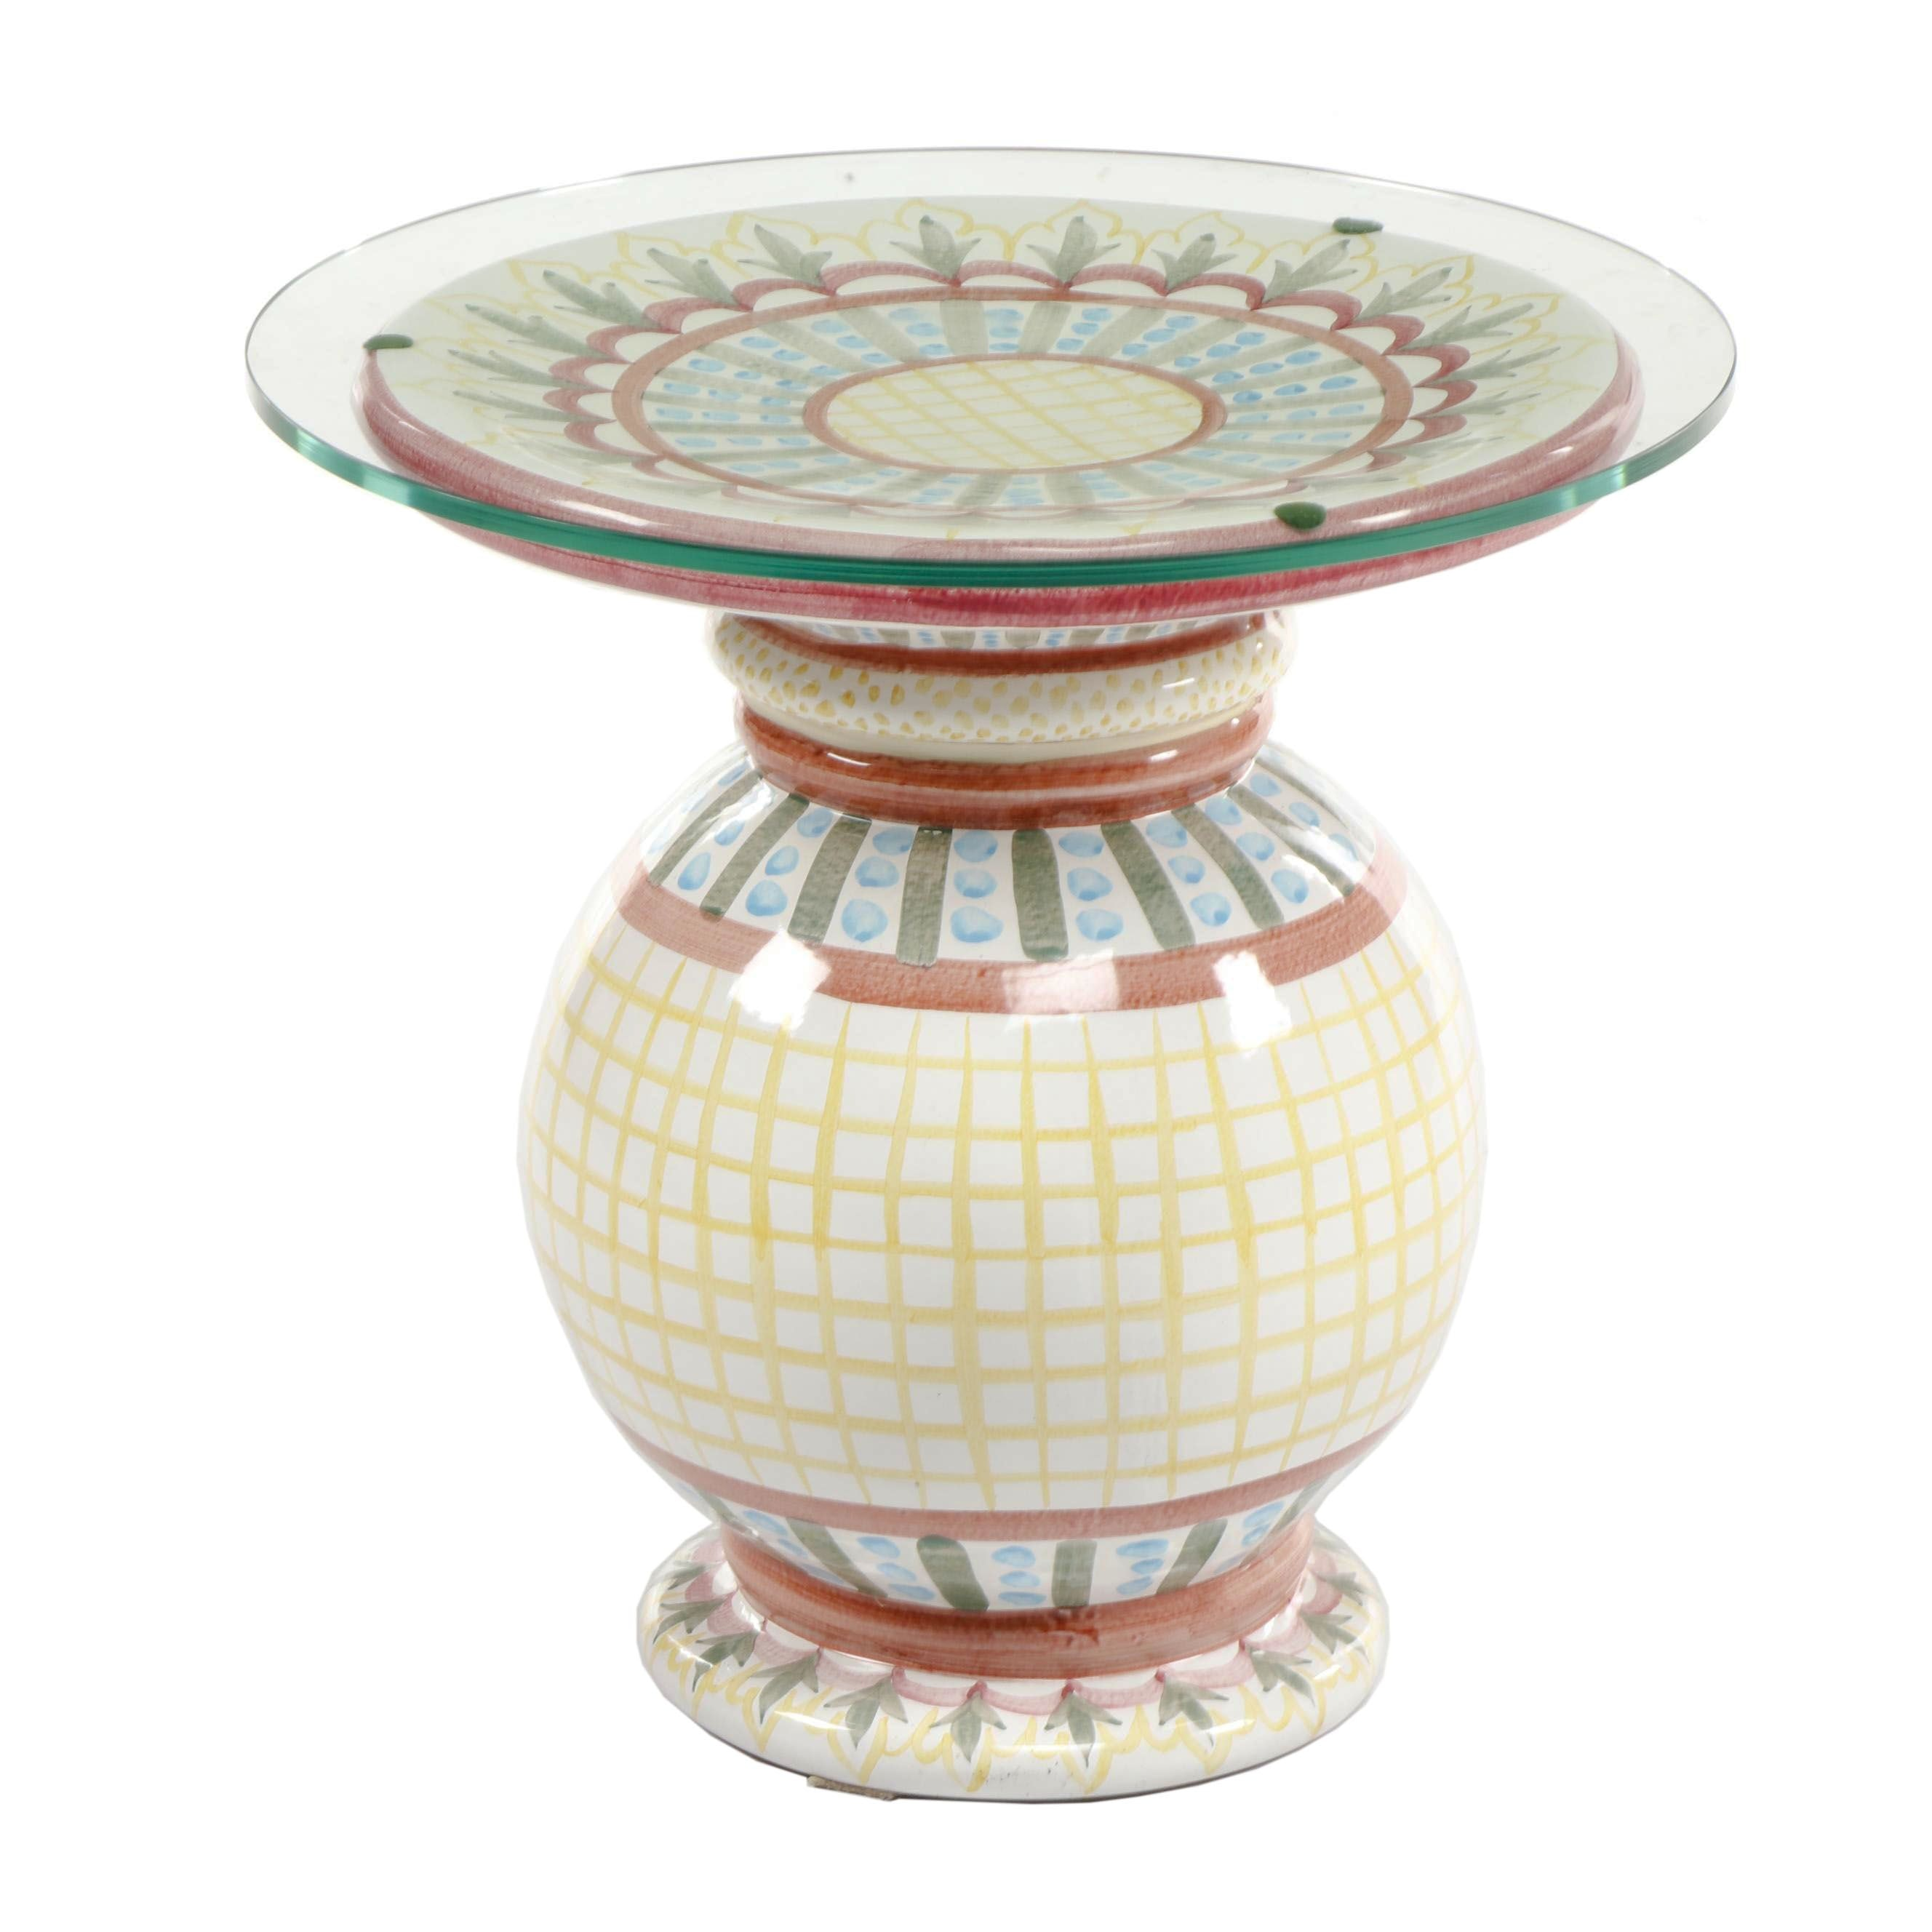 MacKenzie-Childs Hand-Painted Glass-Top Earthenware Pedestal Table